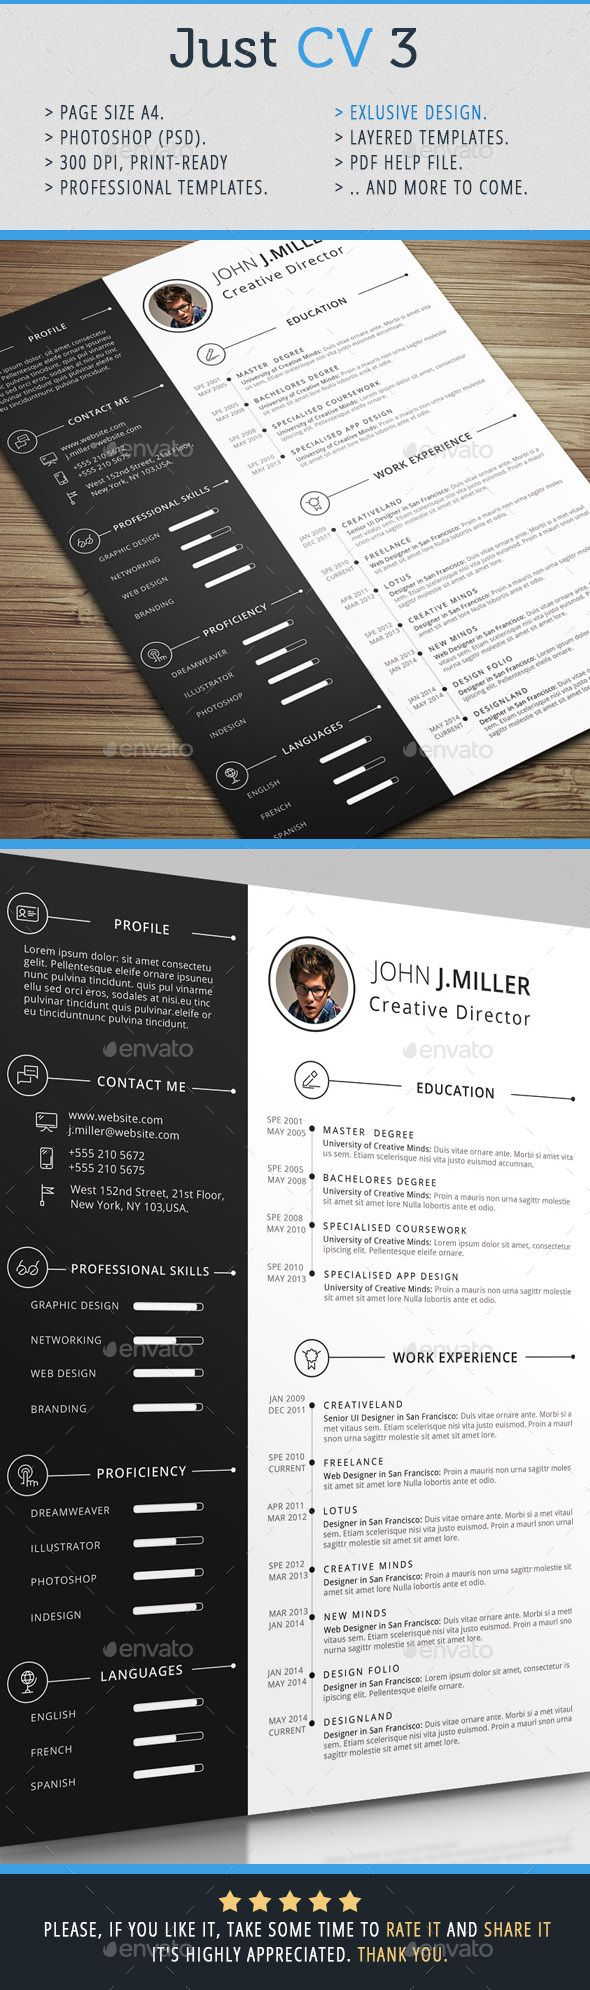 cashier resume format%0A Best     Cv structure ideas on Pinterest   Resume structure  Best cv layout  and Create a cv